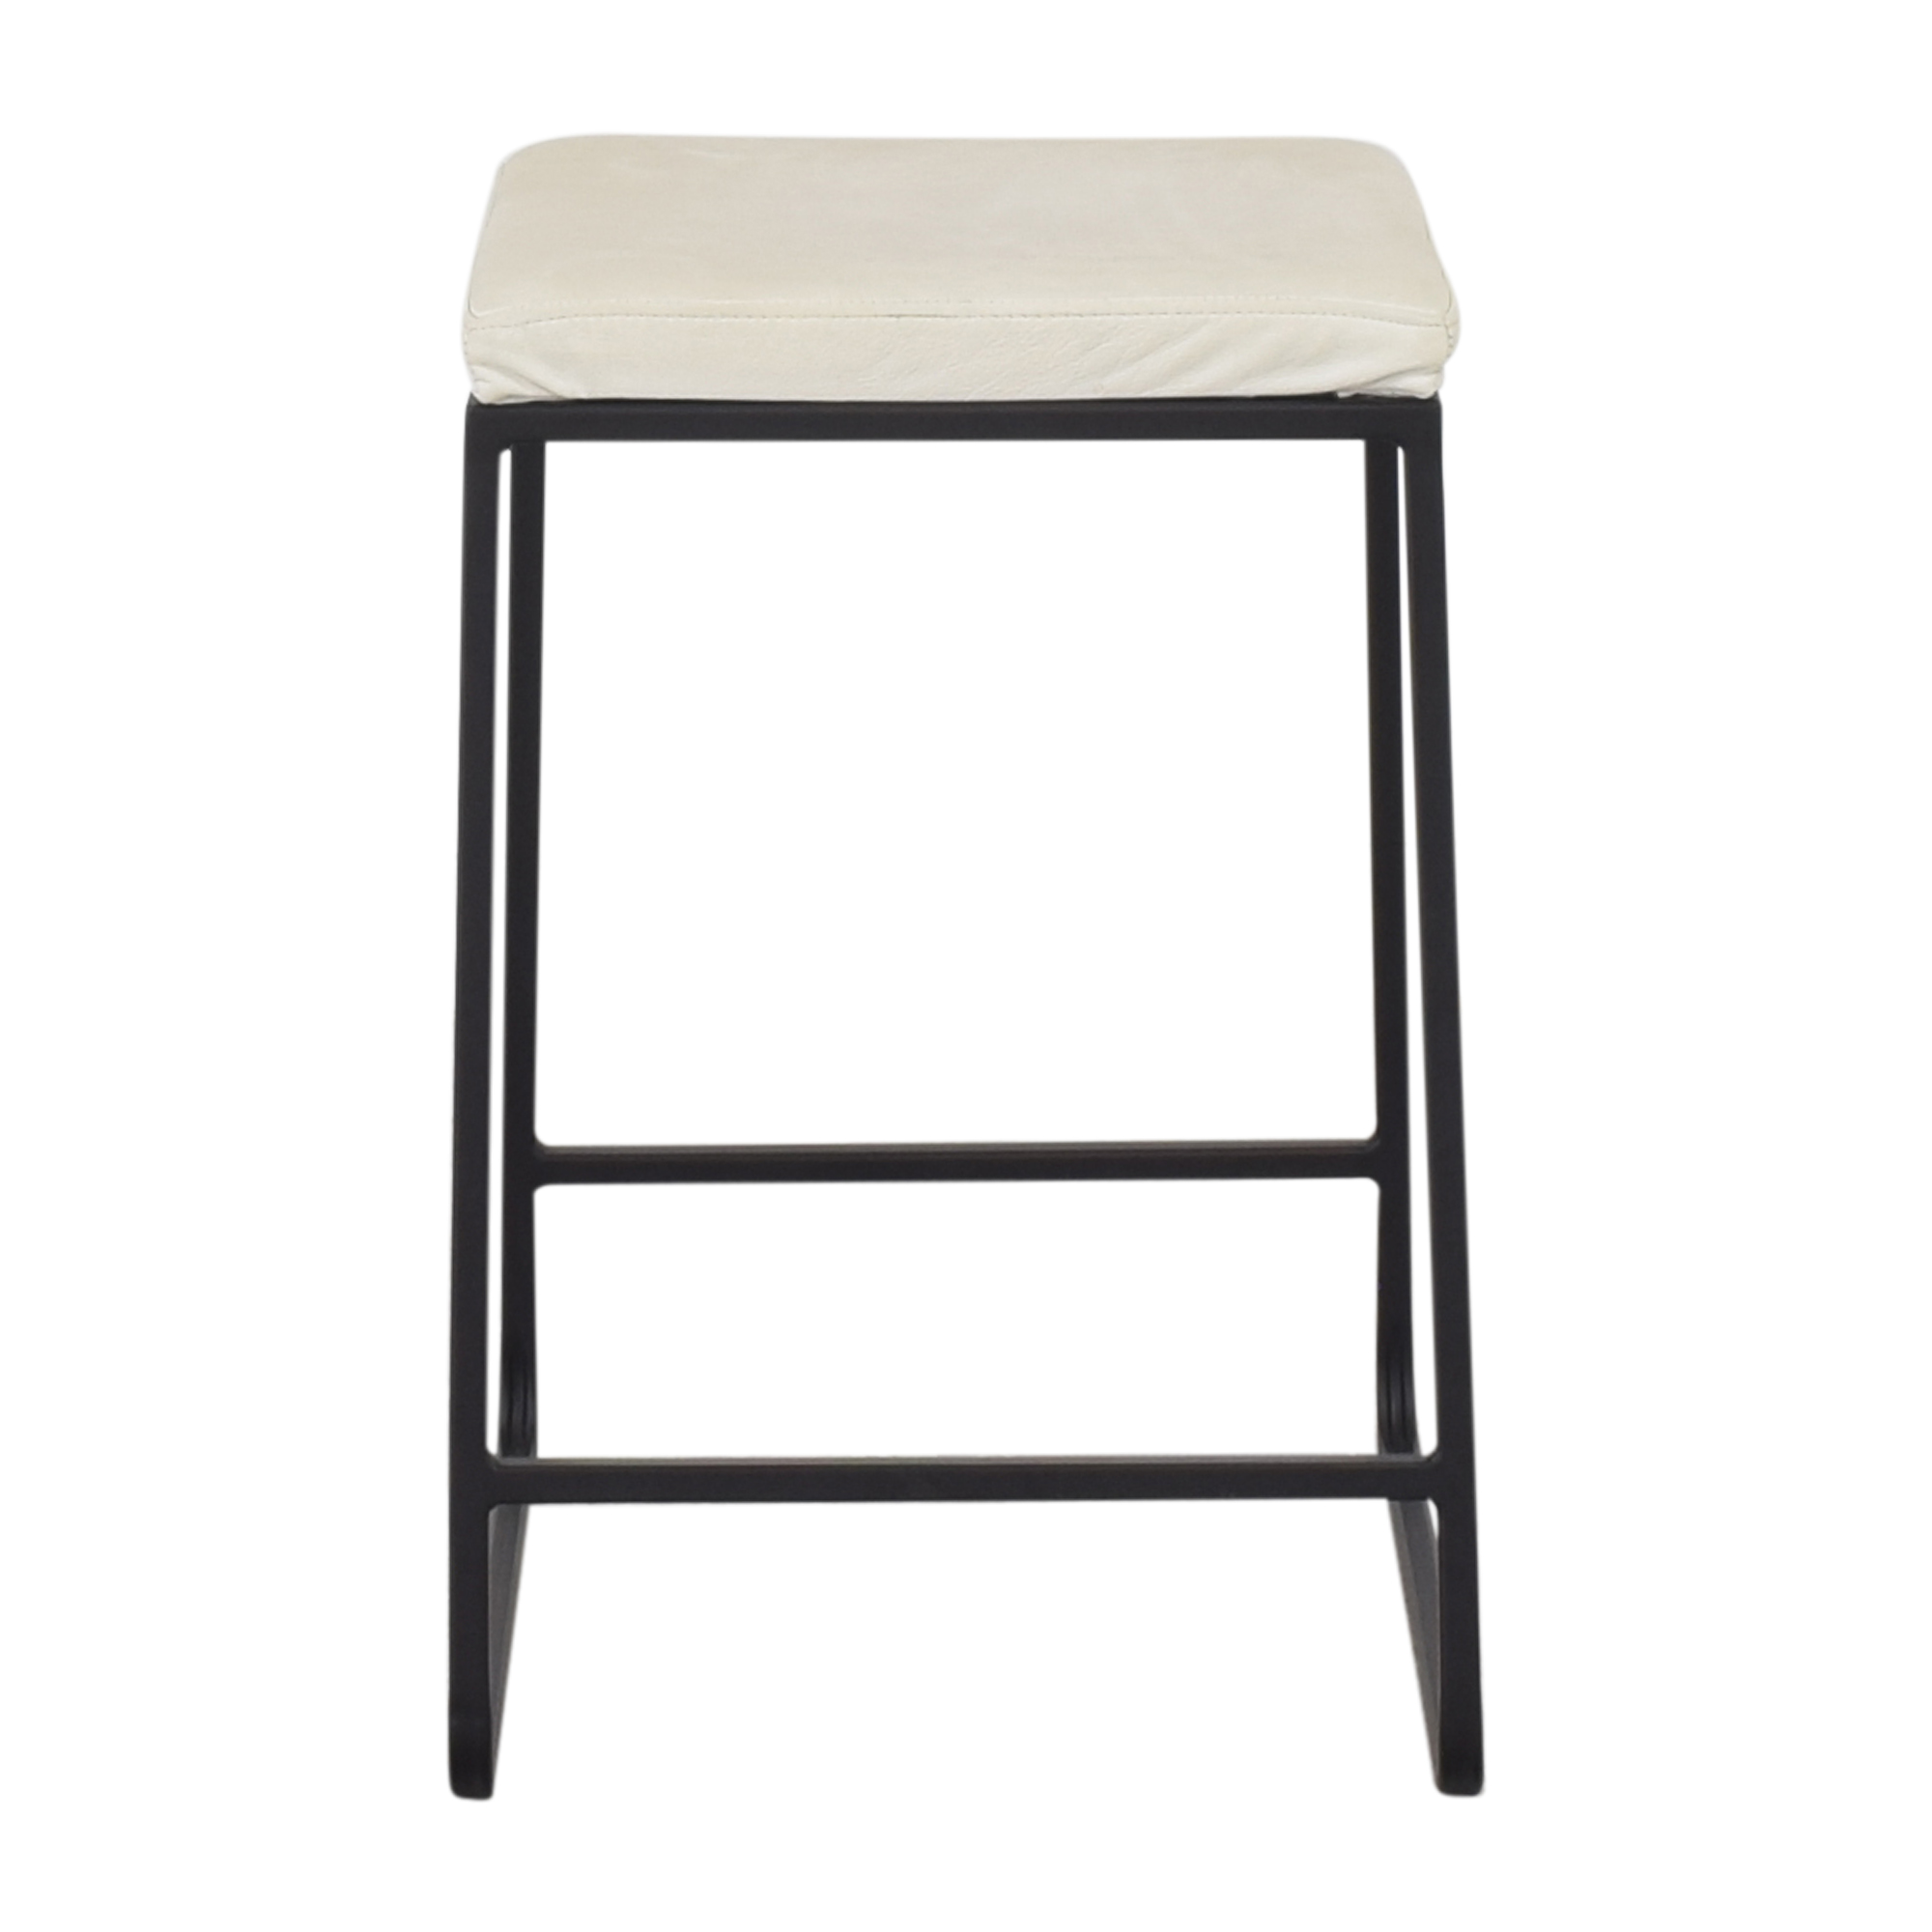 Room & Board Room & Board Collins Counter Stool nj